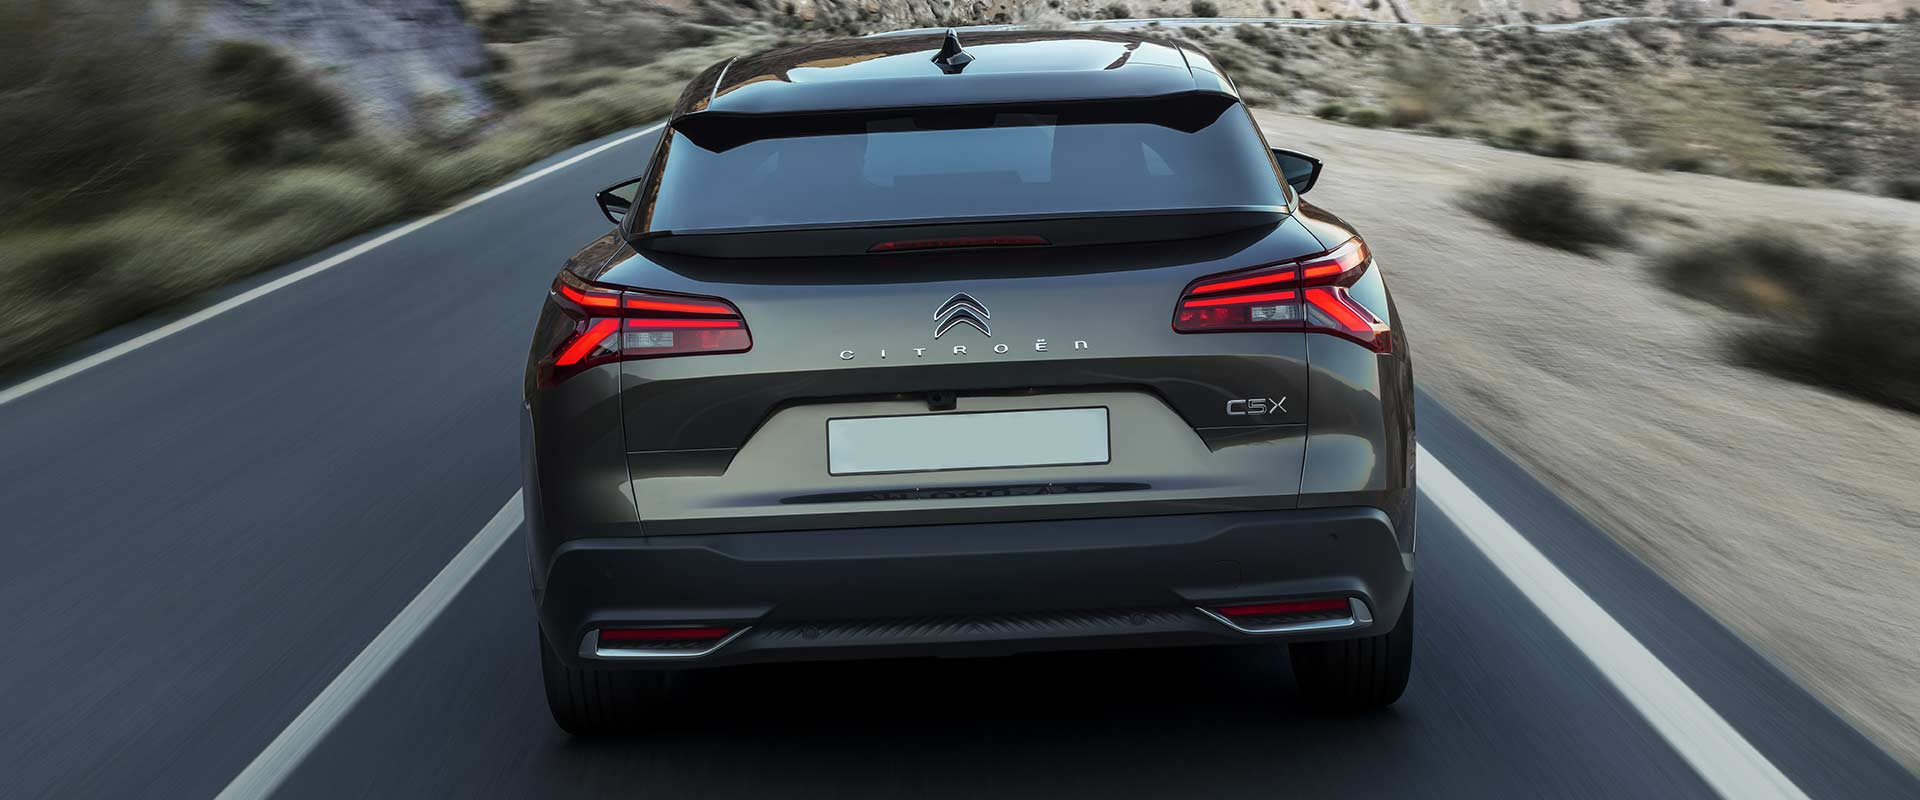 new-citroen-c5x-rear-driving